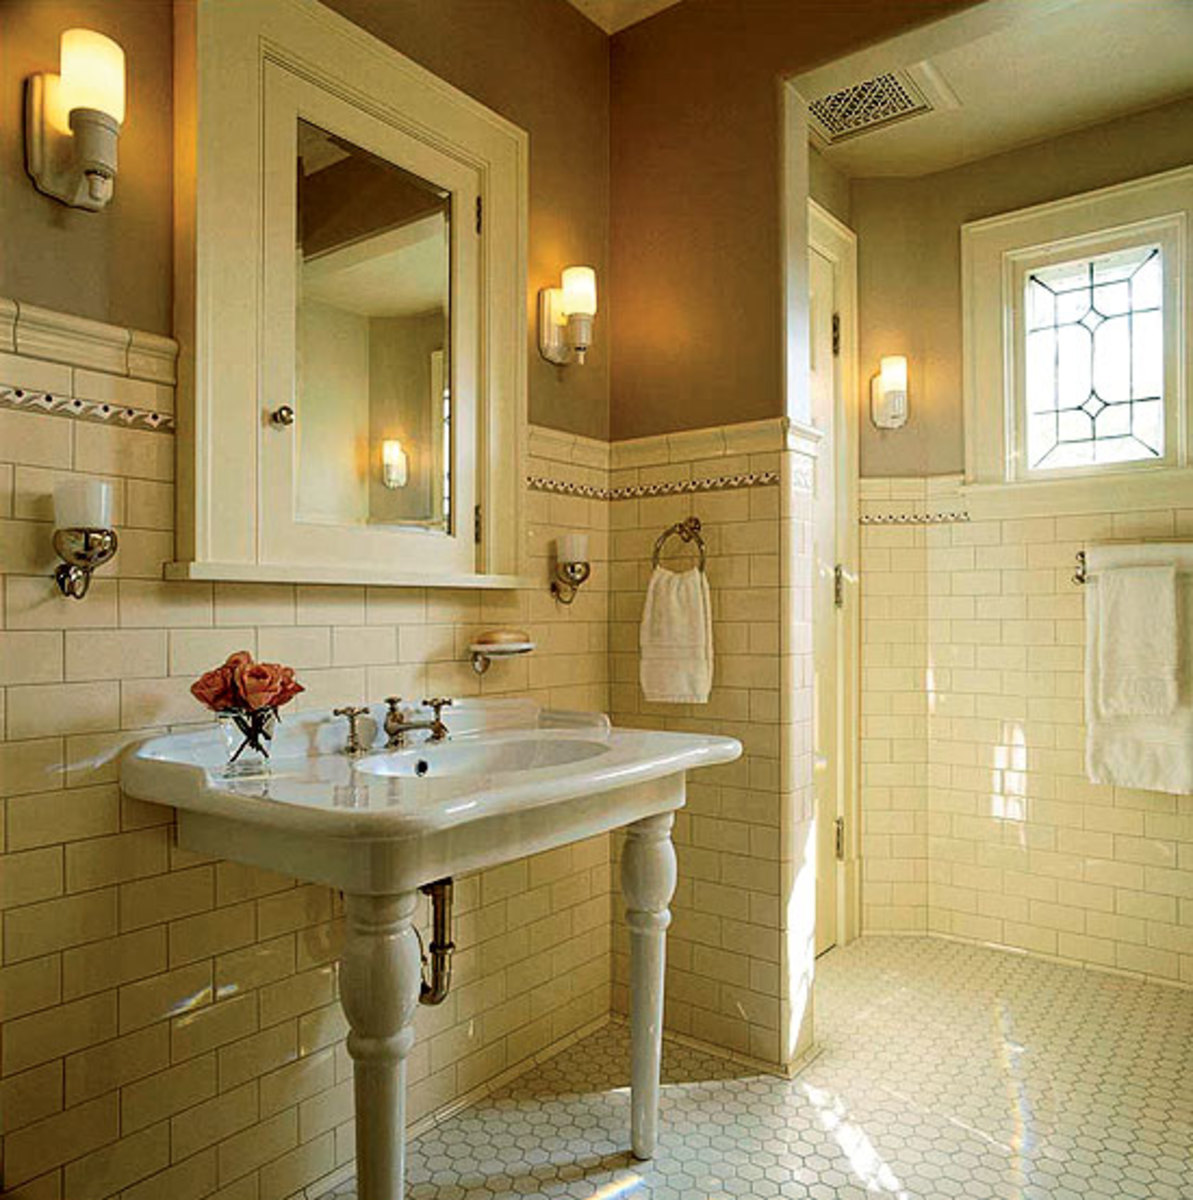 Artful tile for kitchen bath arts crafts homes and - Arts and crafts style bathroom design ...